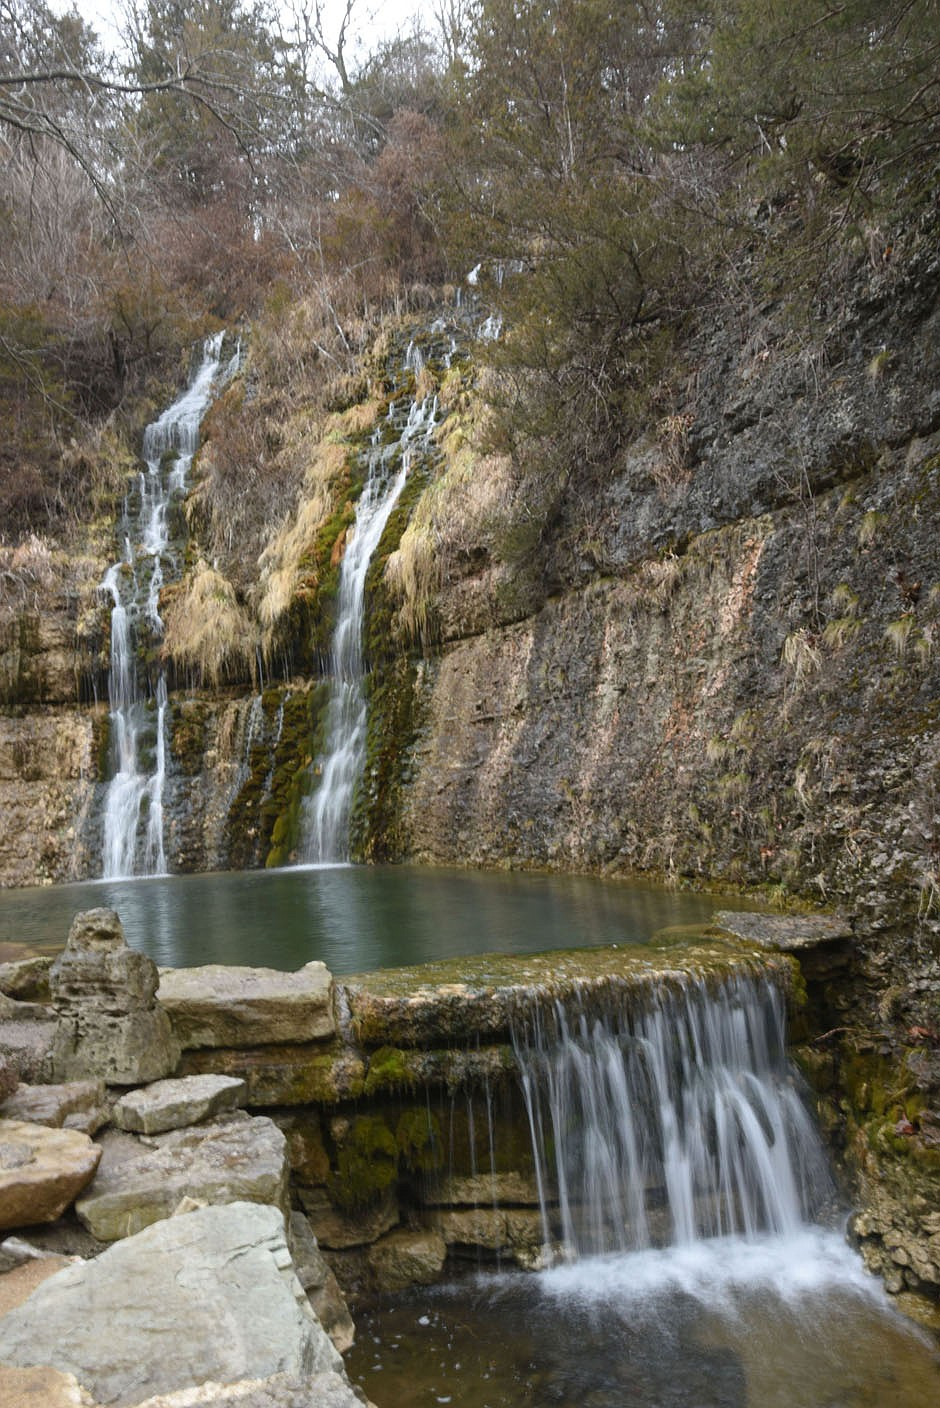 Waterfalls are abundant from one end of the park to the other. (NWA Democrat-Gazette/Flip Putthoff)